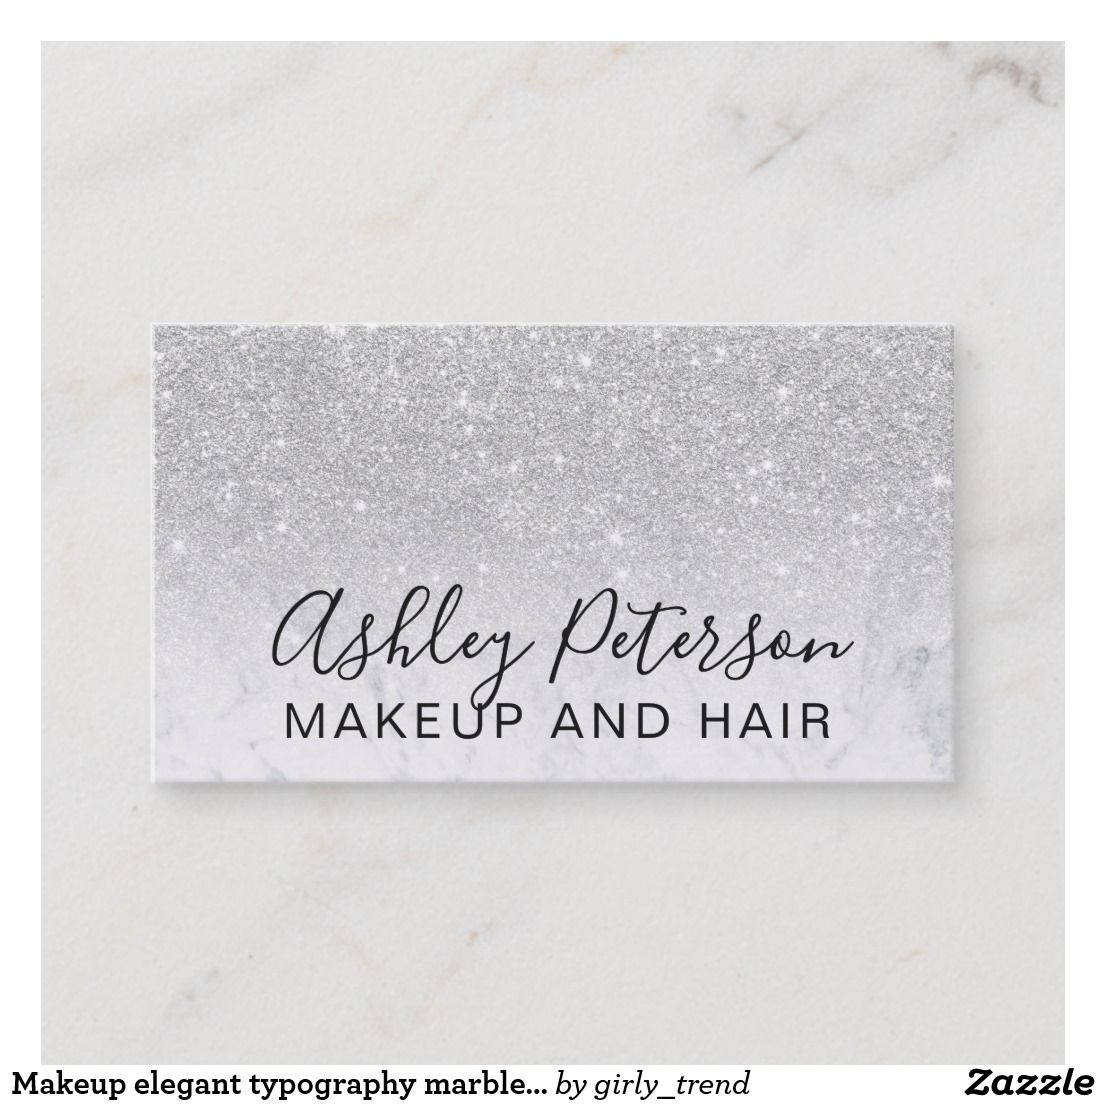 Makeup Elegant Typography Marble Silver Glitter Business Card Zazzle Com Glitter Business Cards Business Card Typography Makeup Artist Business Cards